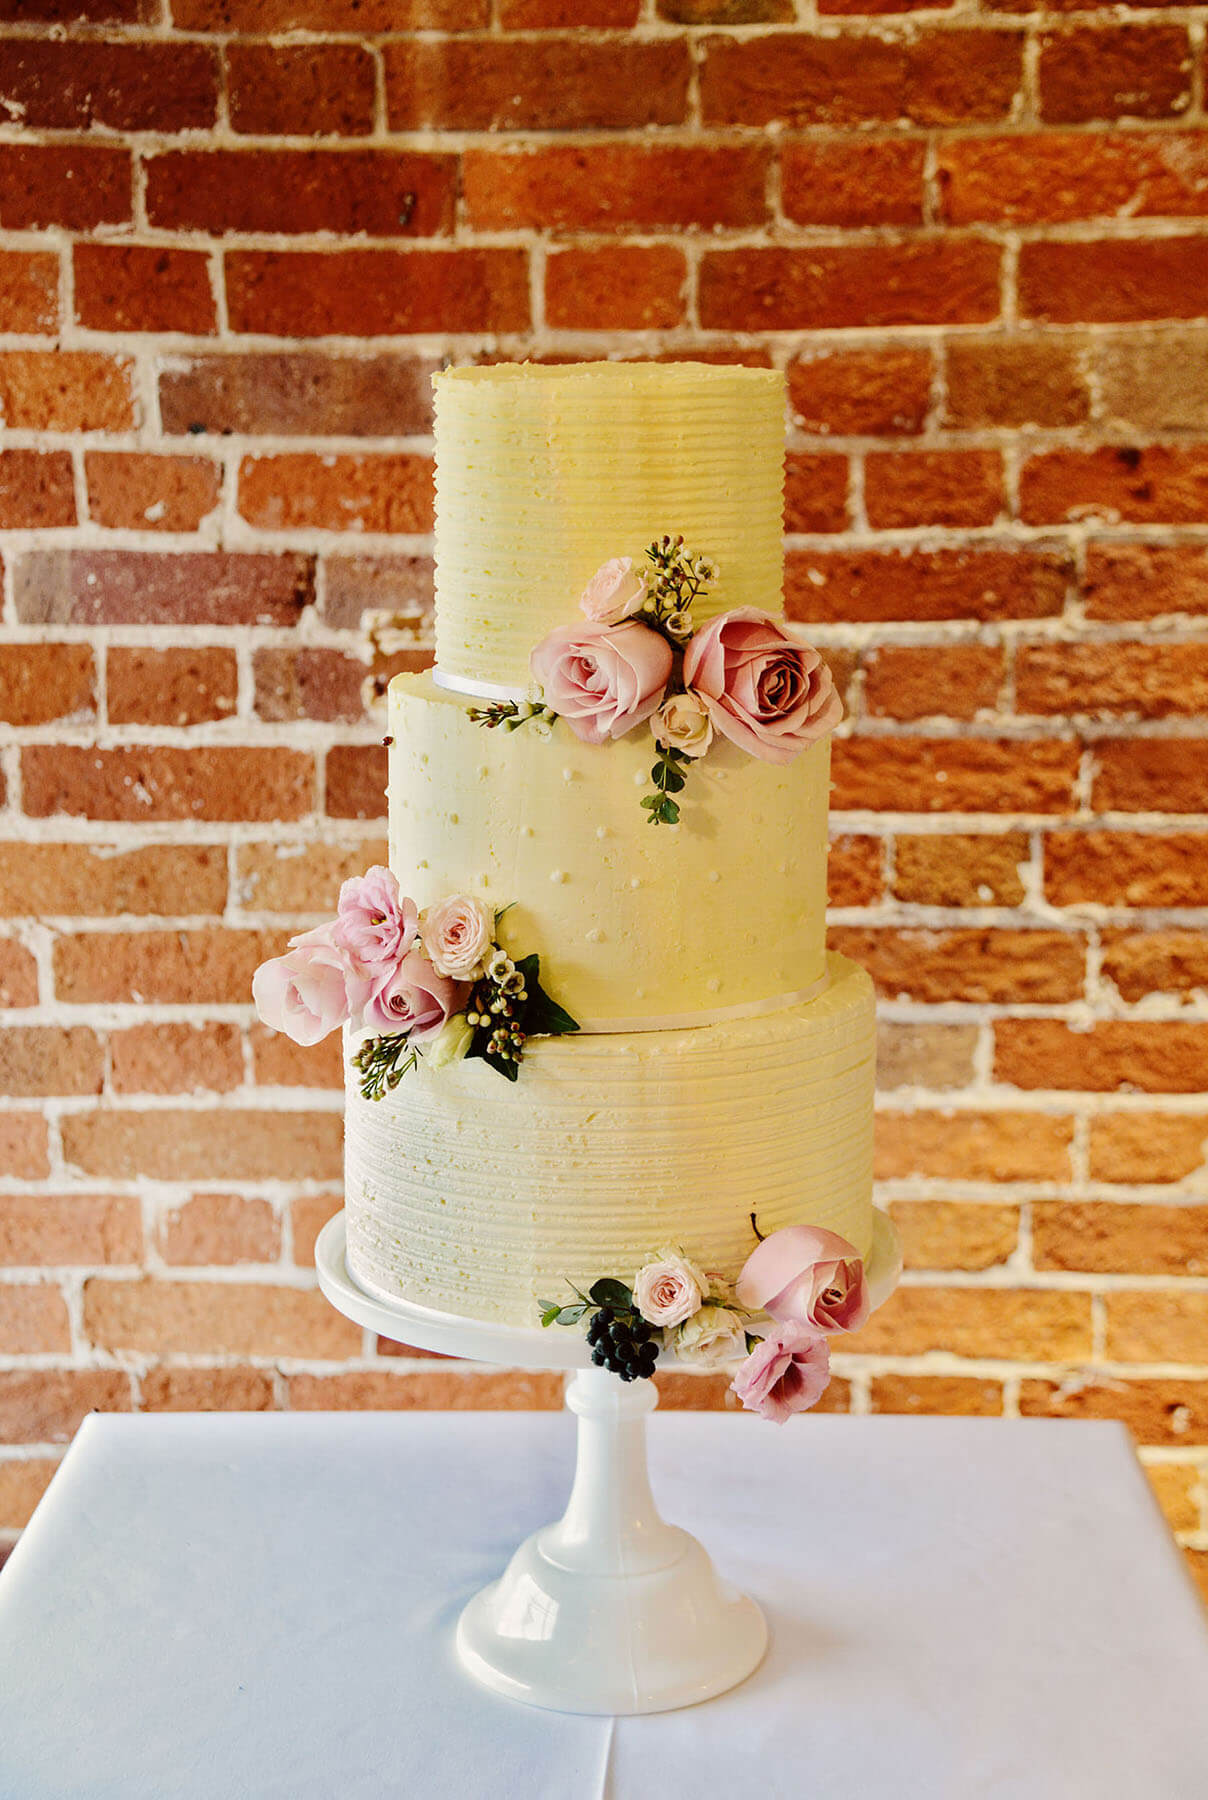 Cream wedding cake with roses on a white stand